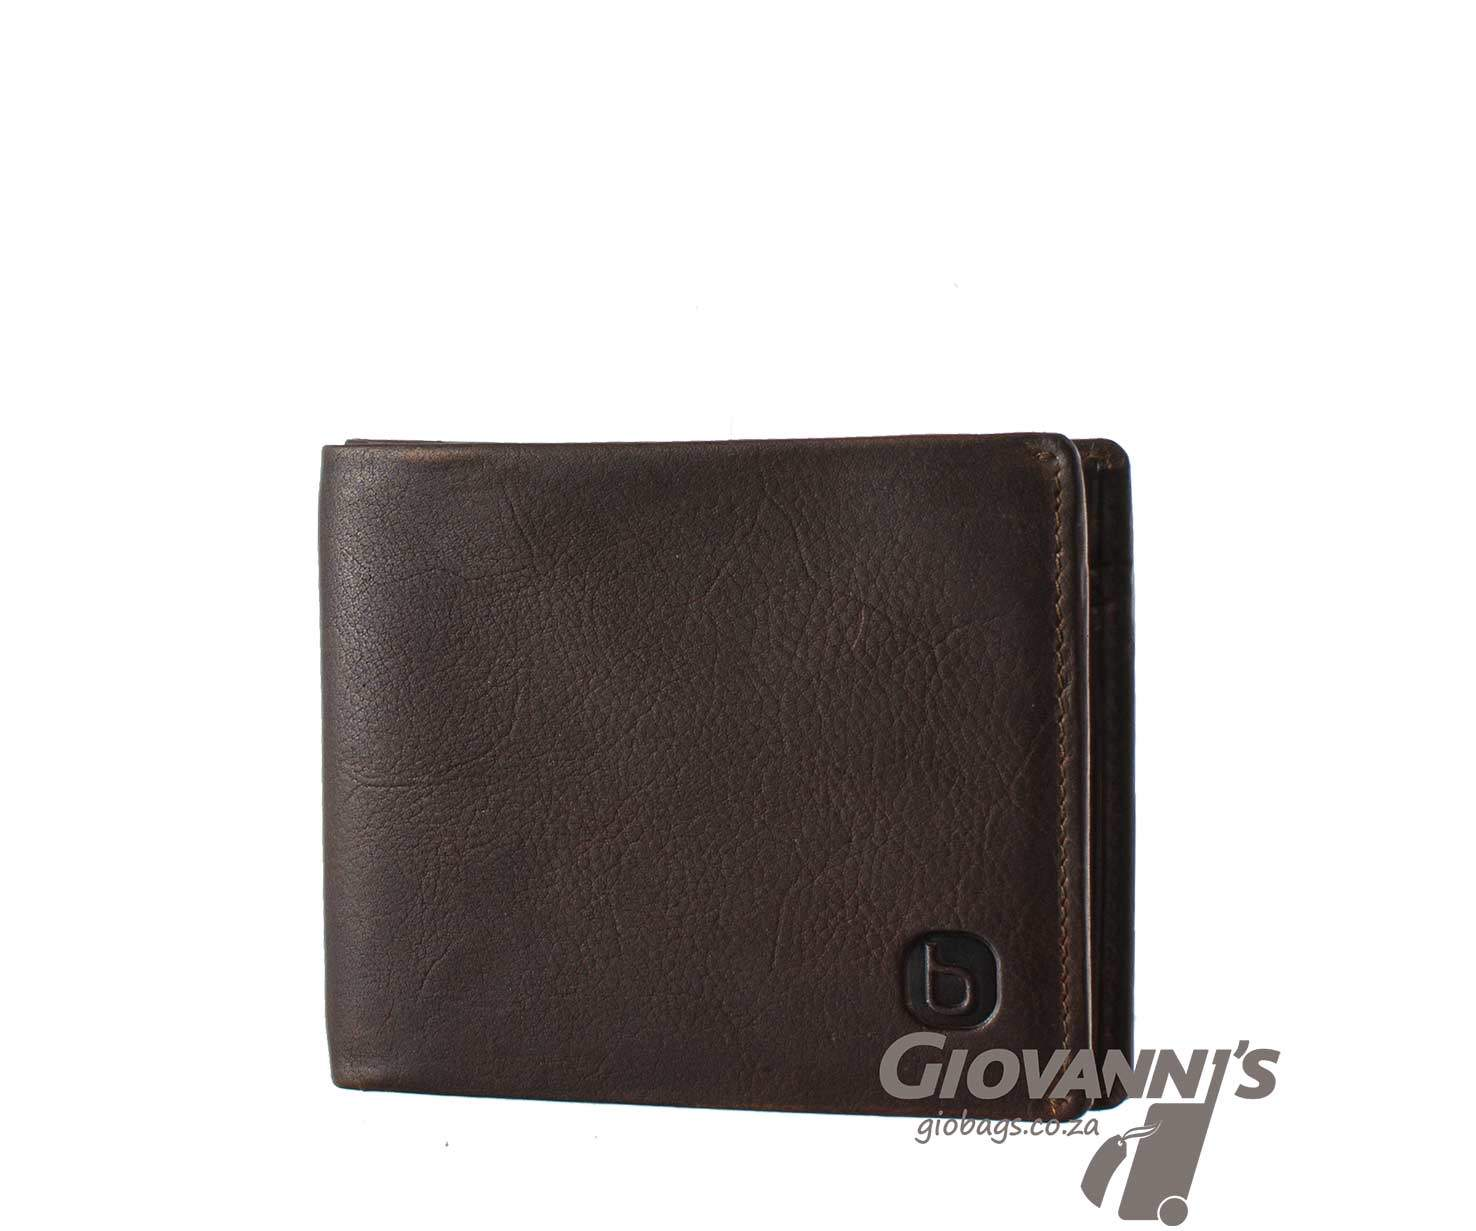 Giobags Brando Leather East Wood Billfold Wallet